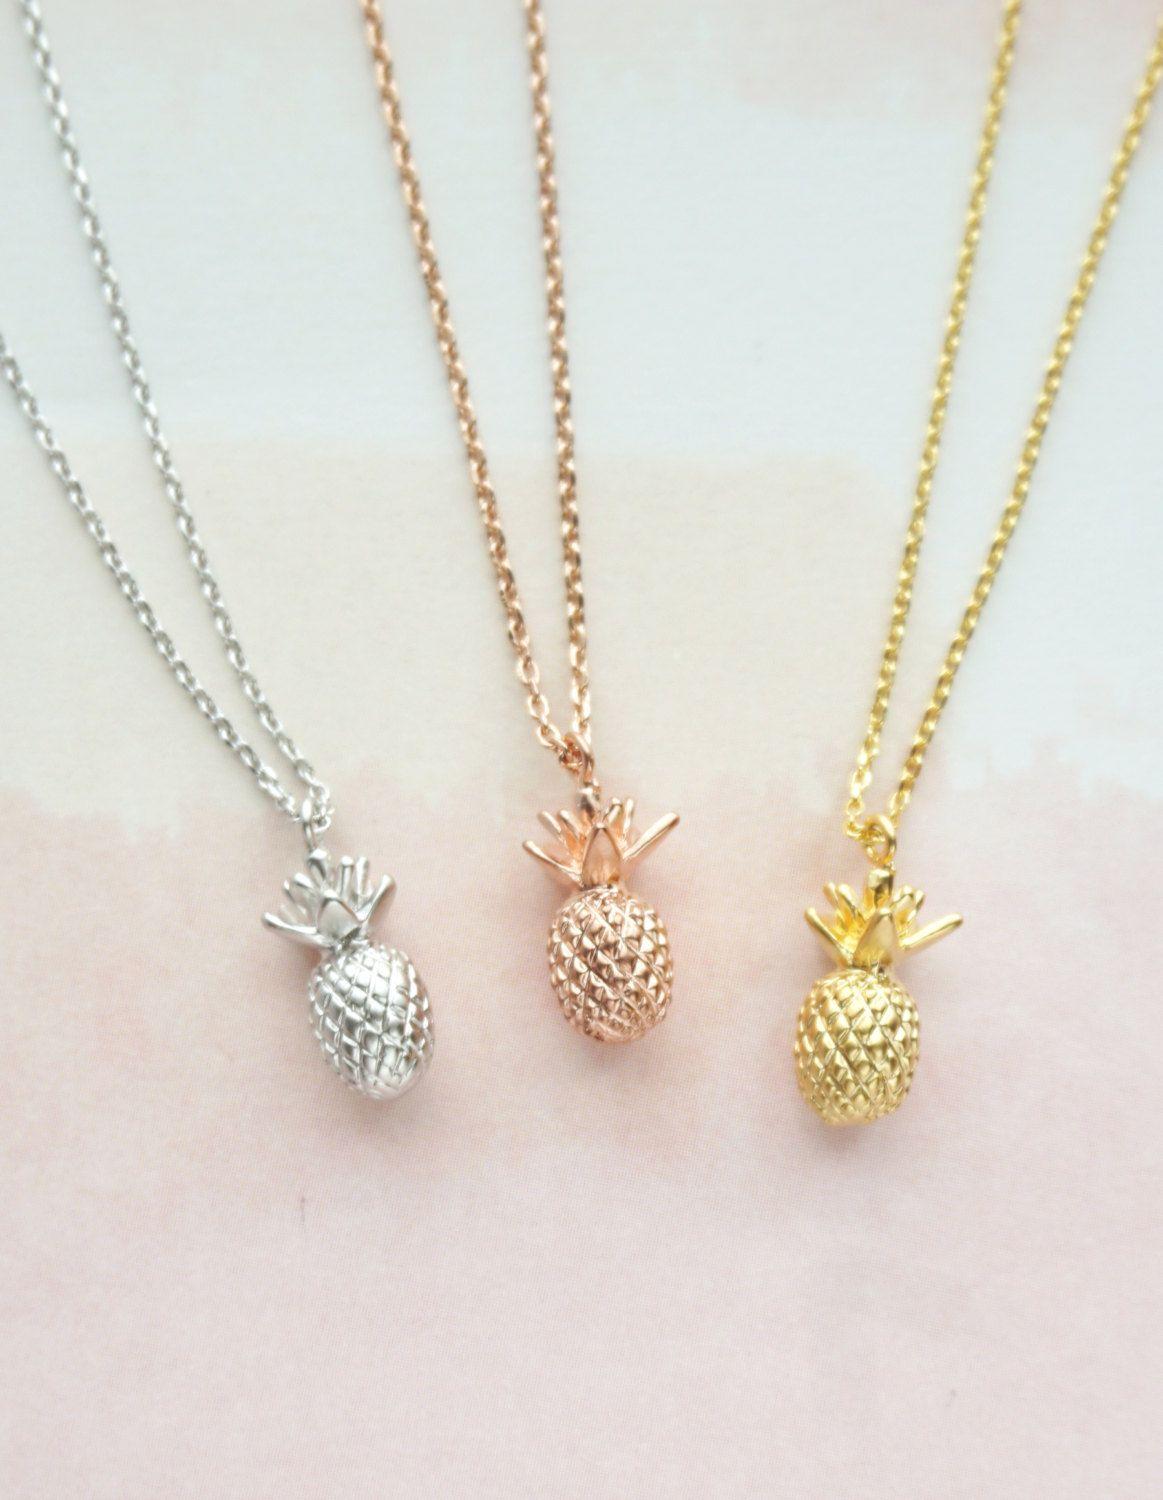 Petite Simple Pineapple Necklace / Pineapple Necklace - Rose Gold SilverPineapple Necklace Pineapple Jewelry Gold Pineapple Necklace Jewelry